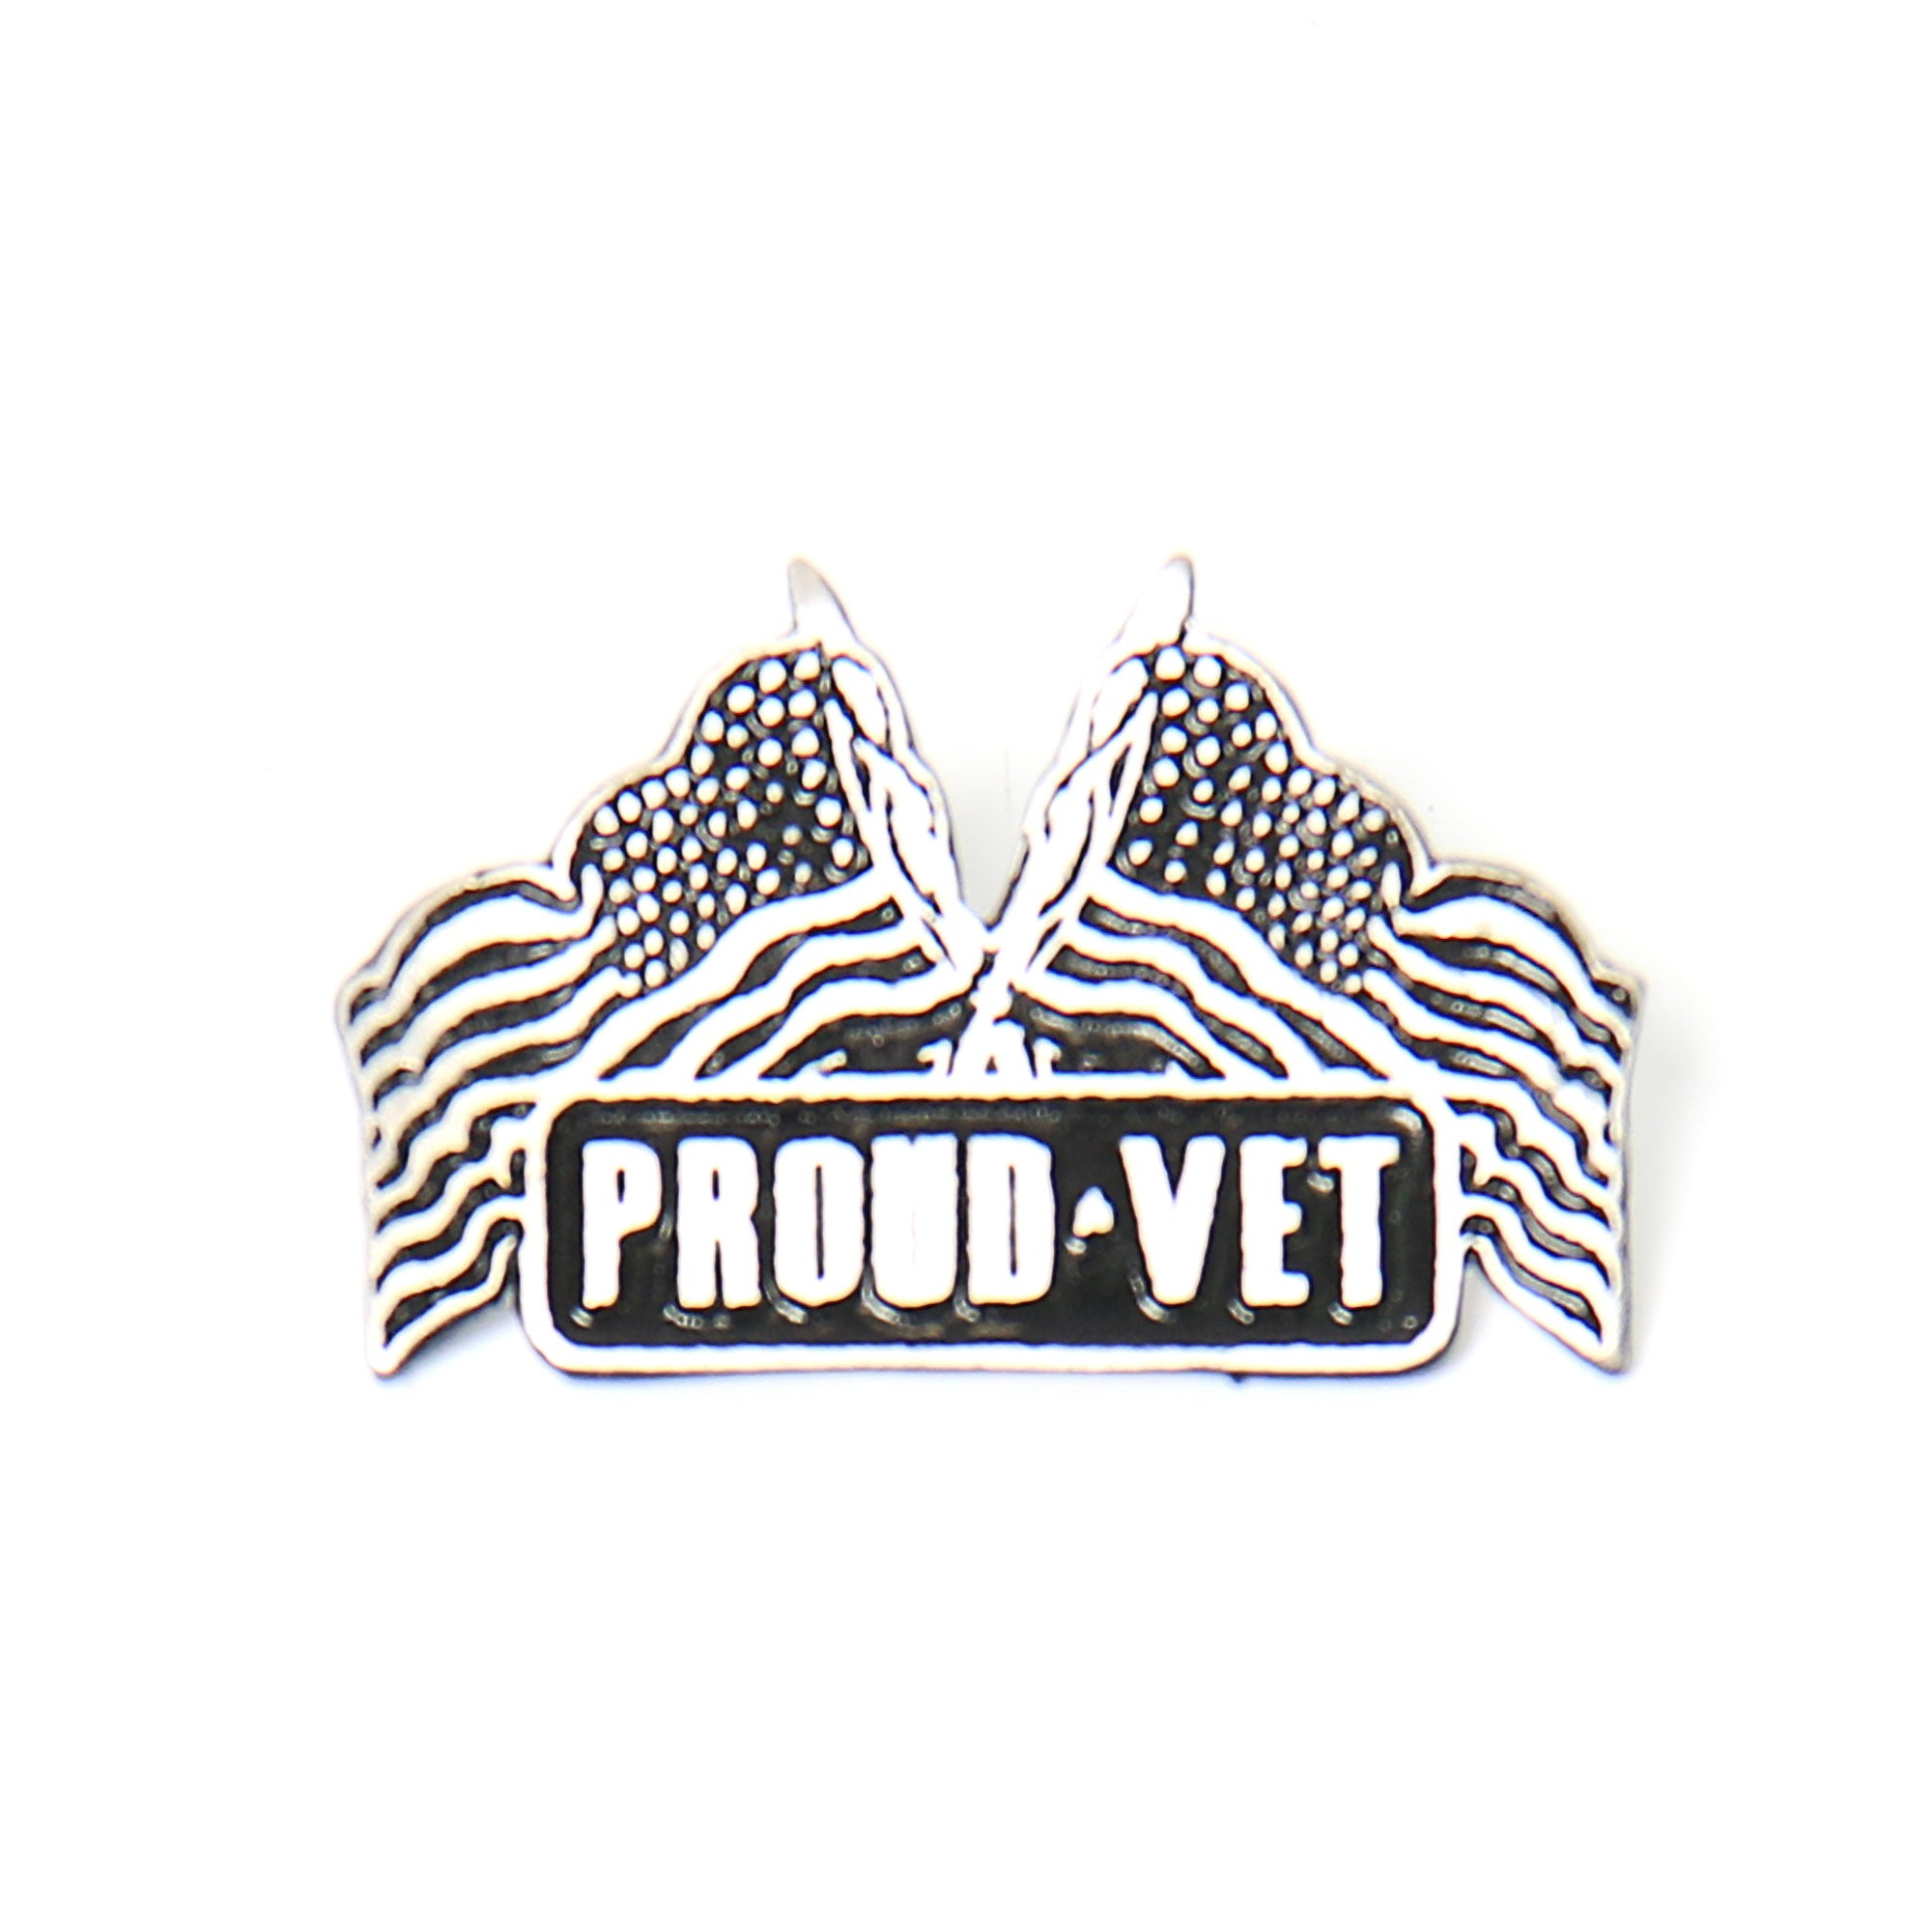 Hot Leathers Proud Vet Pin